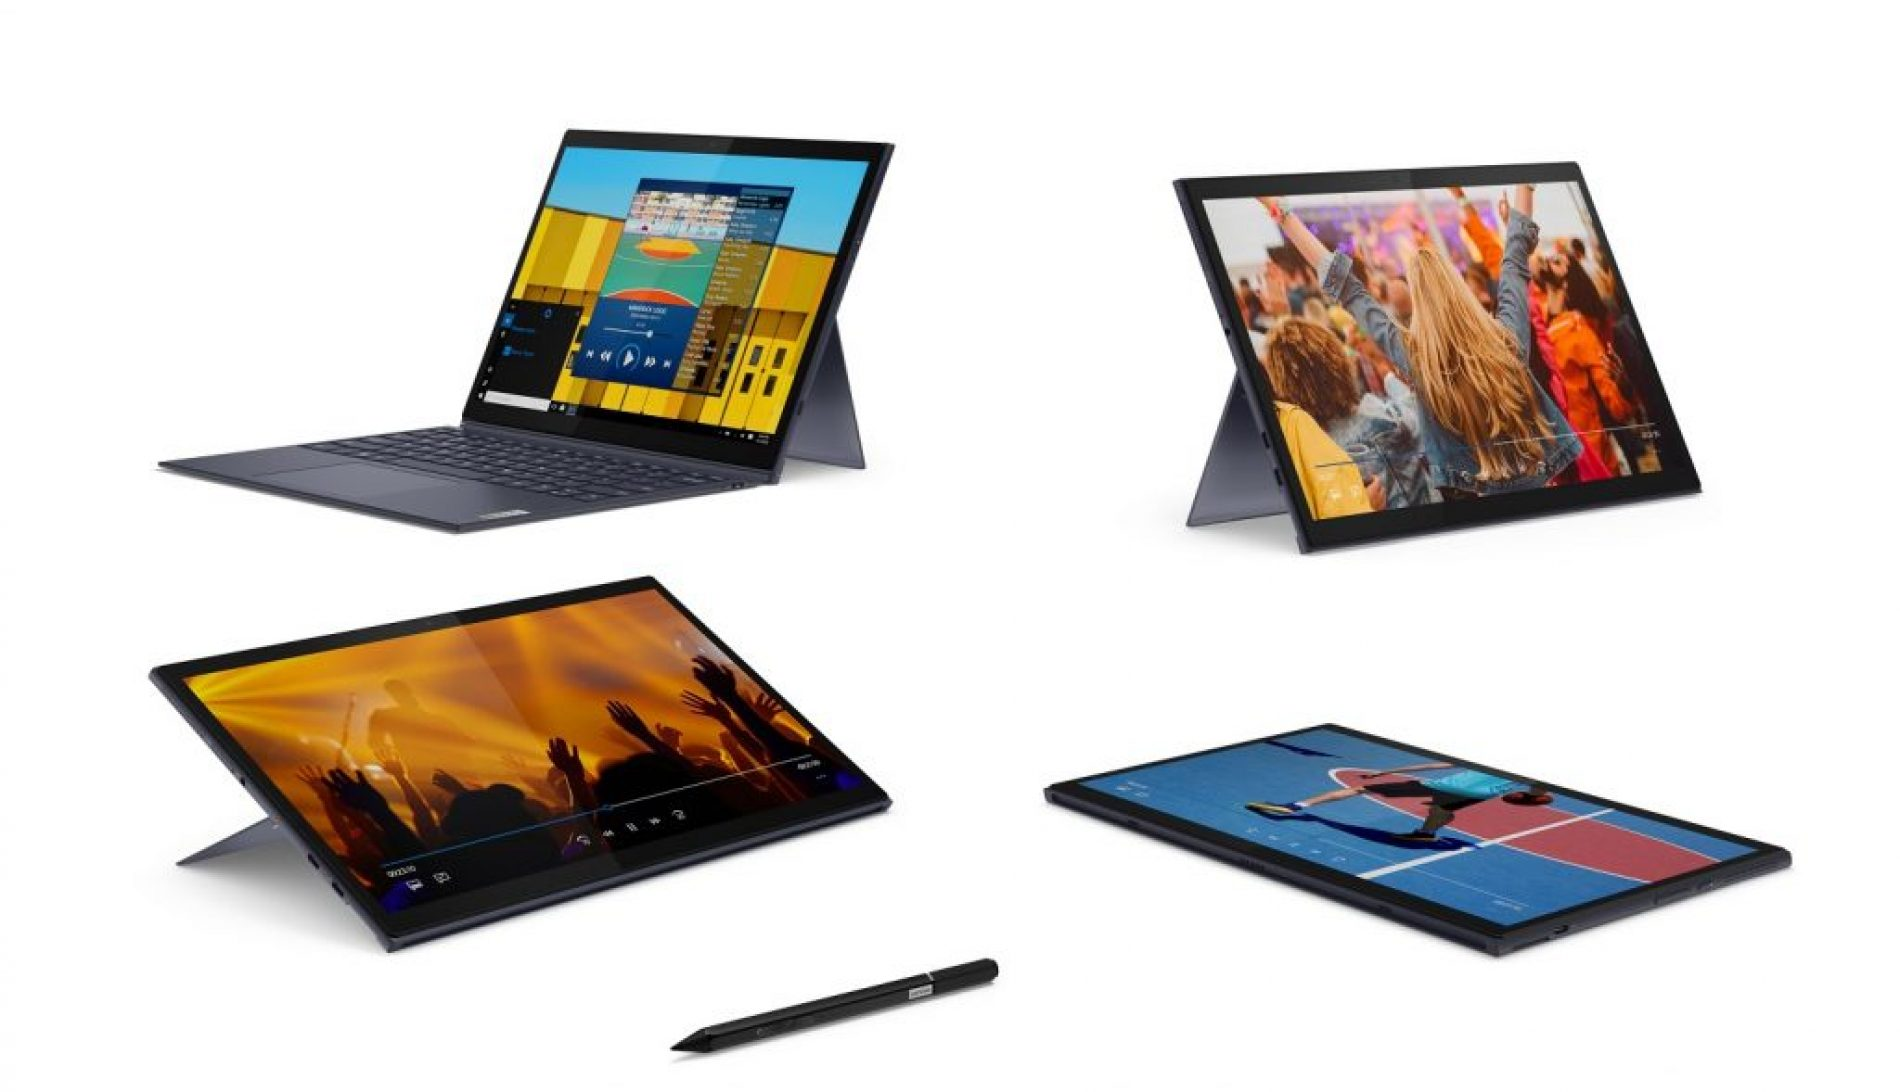 Asustek predicts Eee PC sales will double next year review